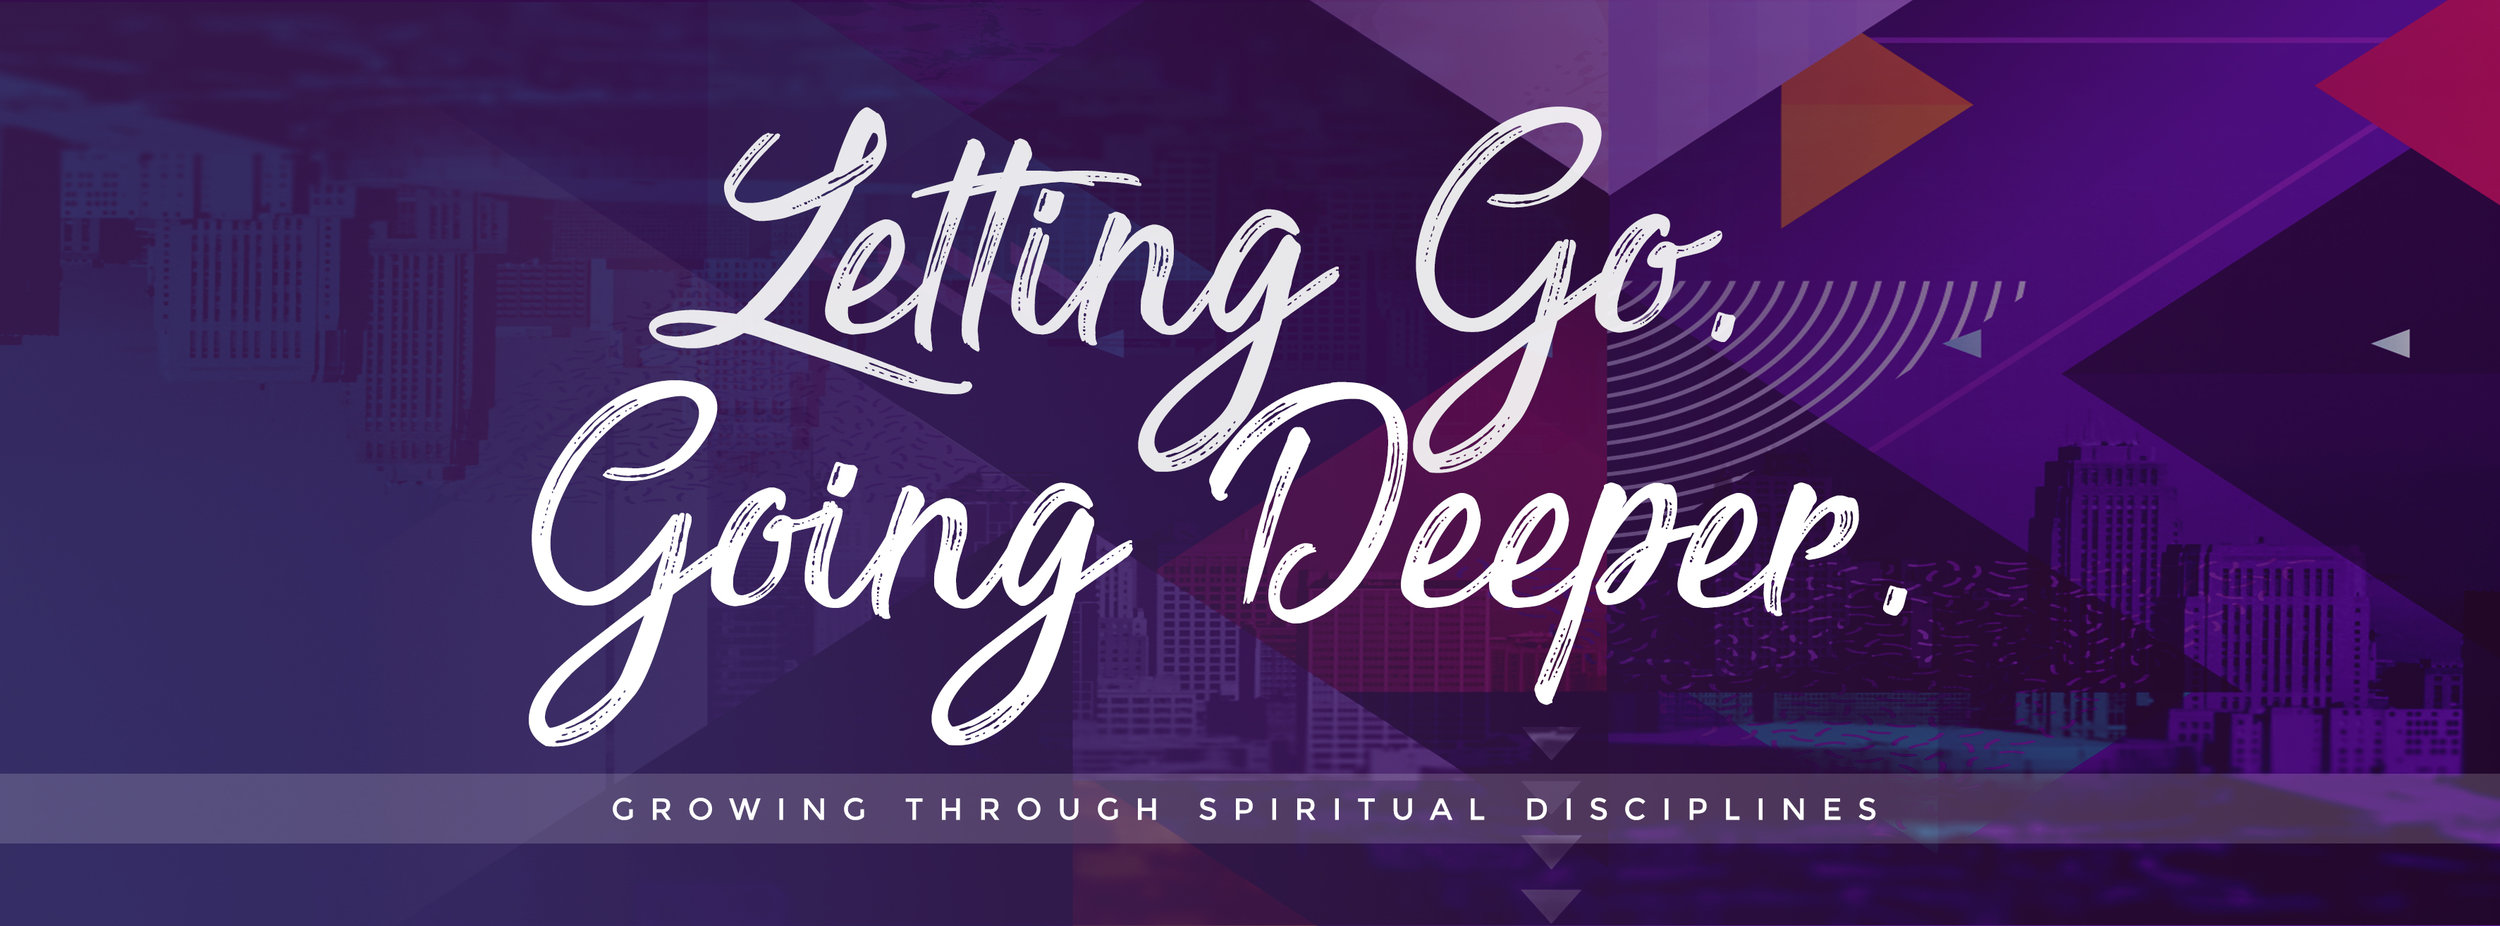 LENT 2019_Letting Go. Going Deeper_fb coverphoto.jpg